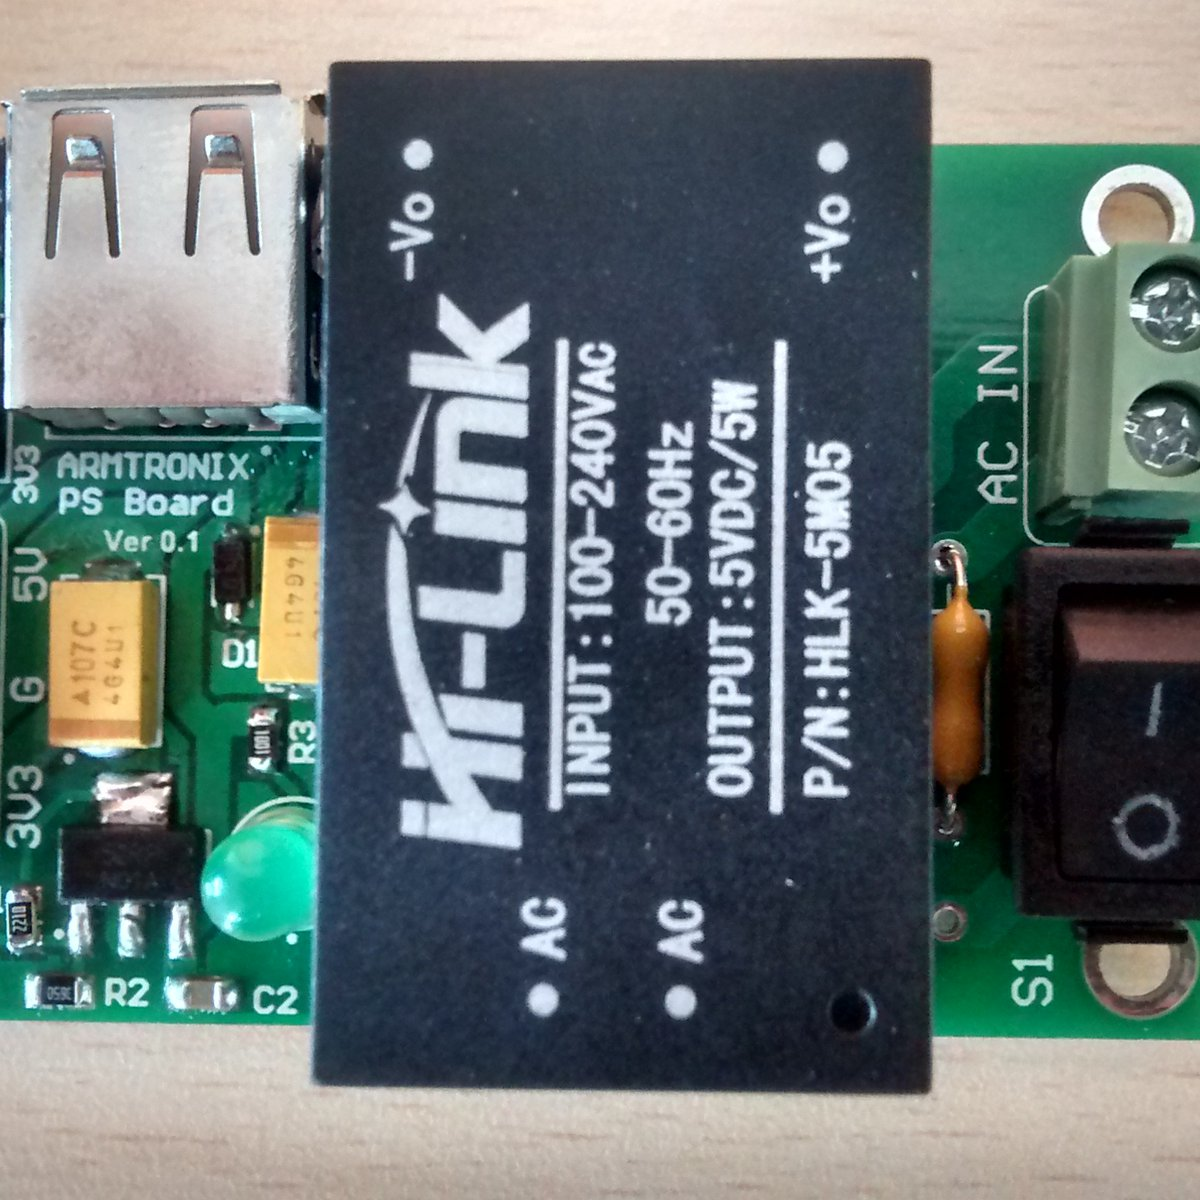 Ac Dc 220v To 5v 33v 1a 5w Step Down Power Supply From Armtronix On Using A Transformer 230v 12v Electrical Engineering Tindie